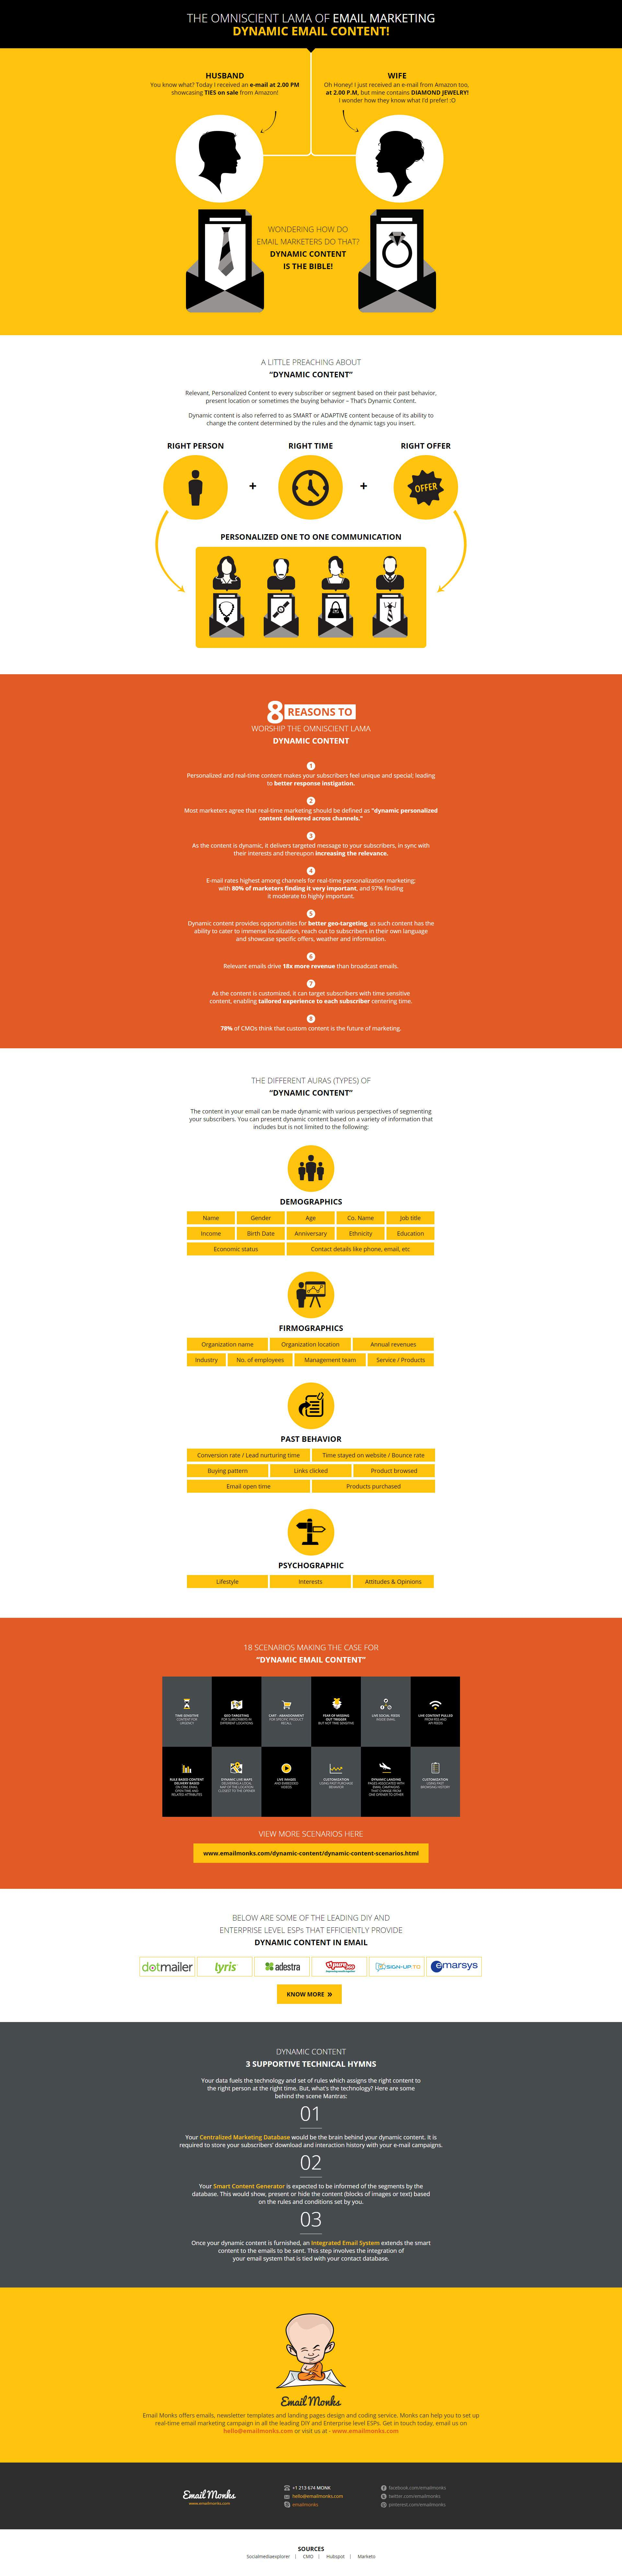 Dynamic Content Infographic